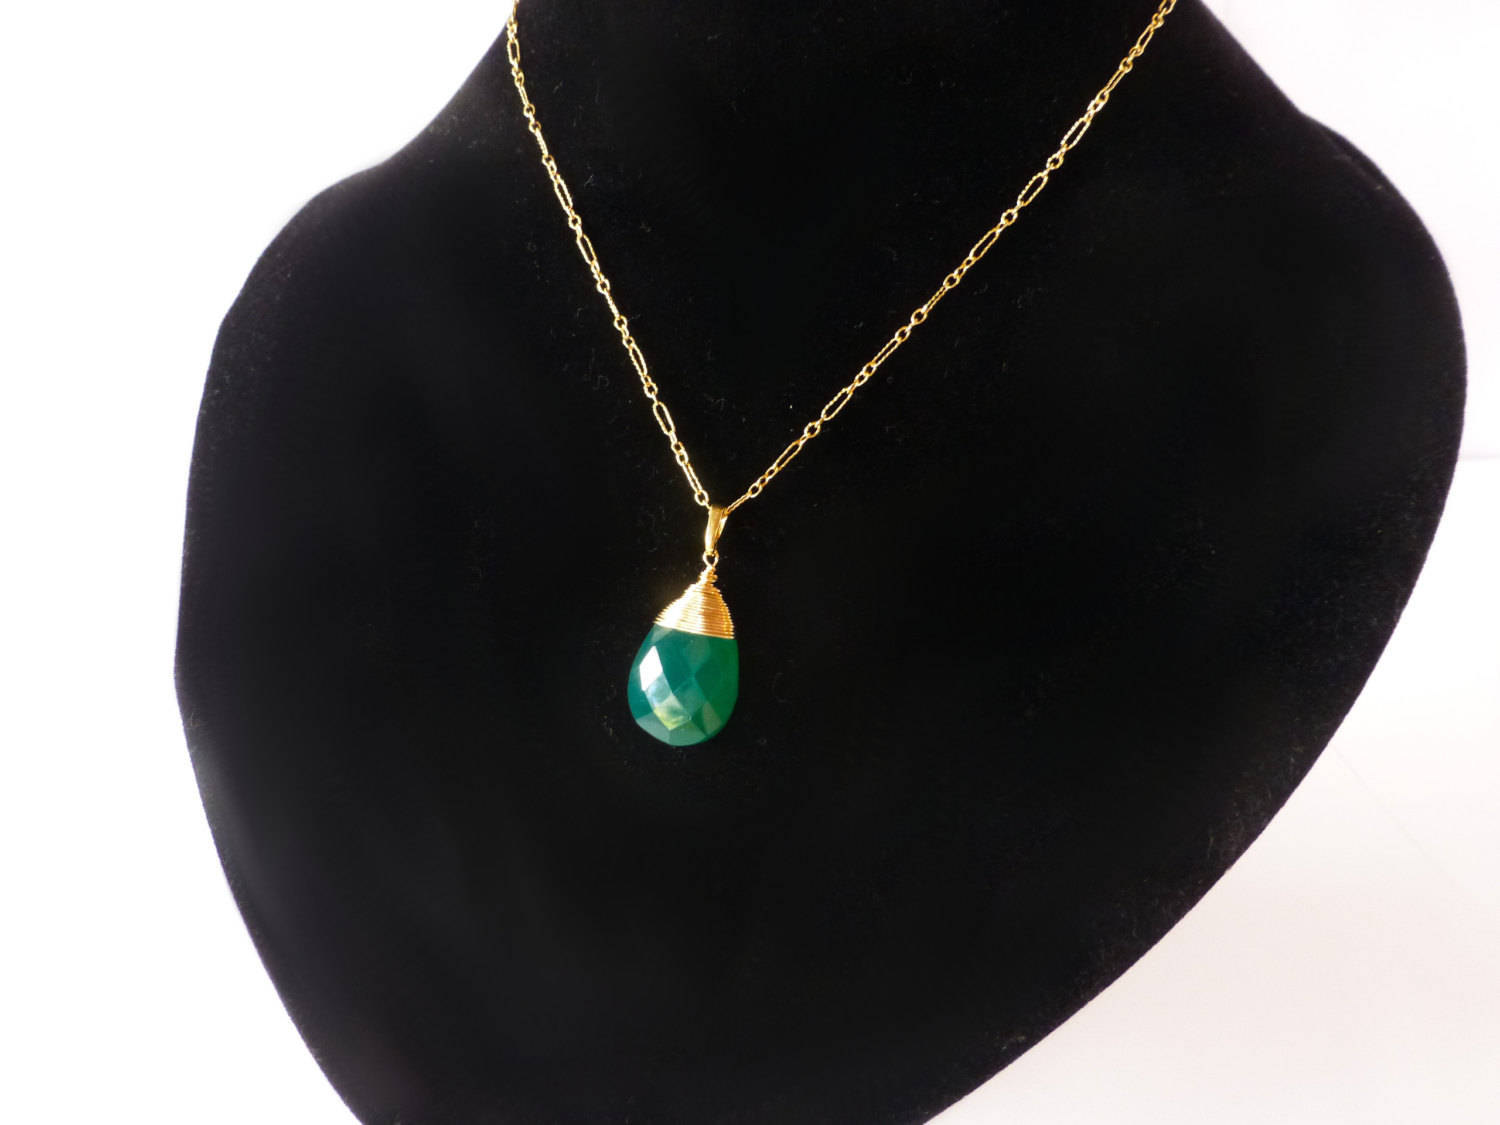 Emerald Green Onyx Large Pendant Necklace In Gold Filled. Traditional Wedding Rings. Designer Anklet. Silk Necklace. Rosary Necklace. Bridesmaids Necklace. Arty Engagement Rings. Elephant Necklace. Personalized Chains